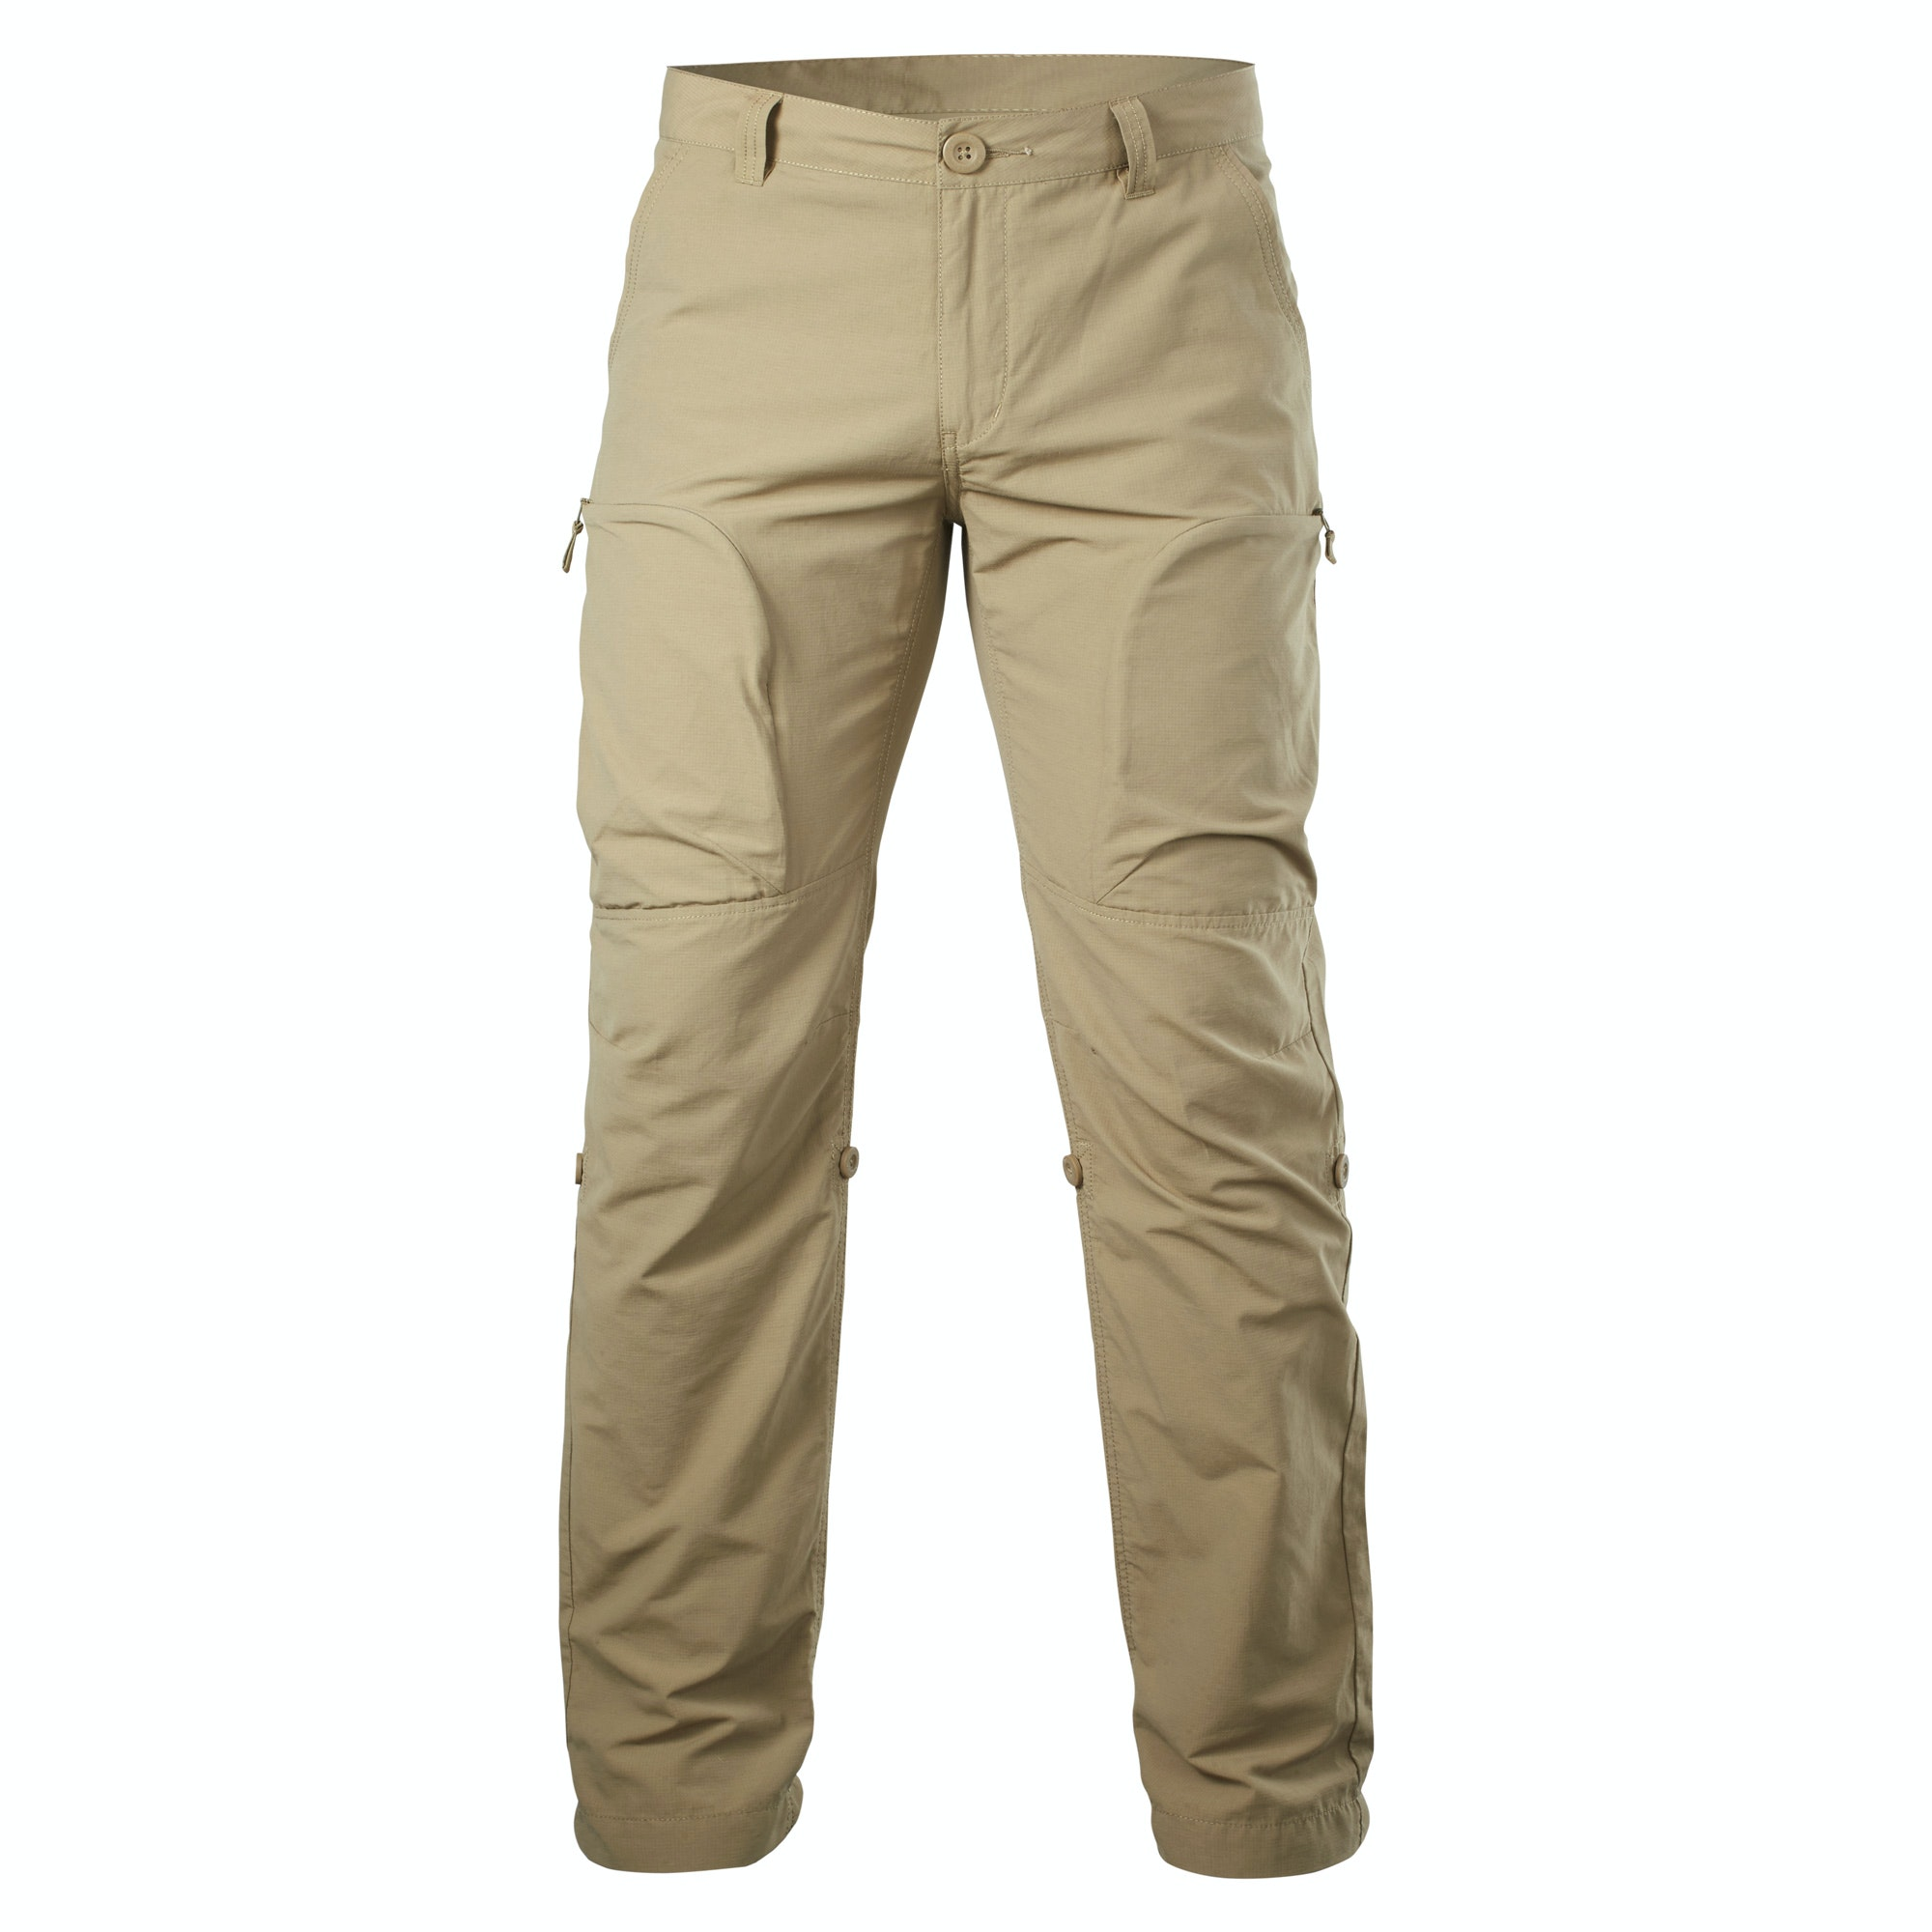 Mens Pants at Macy's come in all styles and sizes. Shop Men's Pants: Dress Pants, Chinos, Khakis, pants and more at Macy's! Macy's Presents: The Edit- A curated mix of fashion and inspiration Check It Out. NEW Dockers Signature Lux Cotton Slim Fit Stretch Khaki Pants.